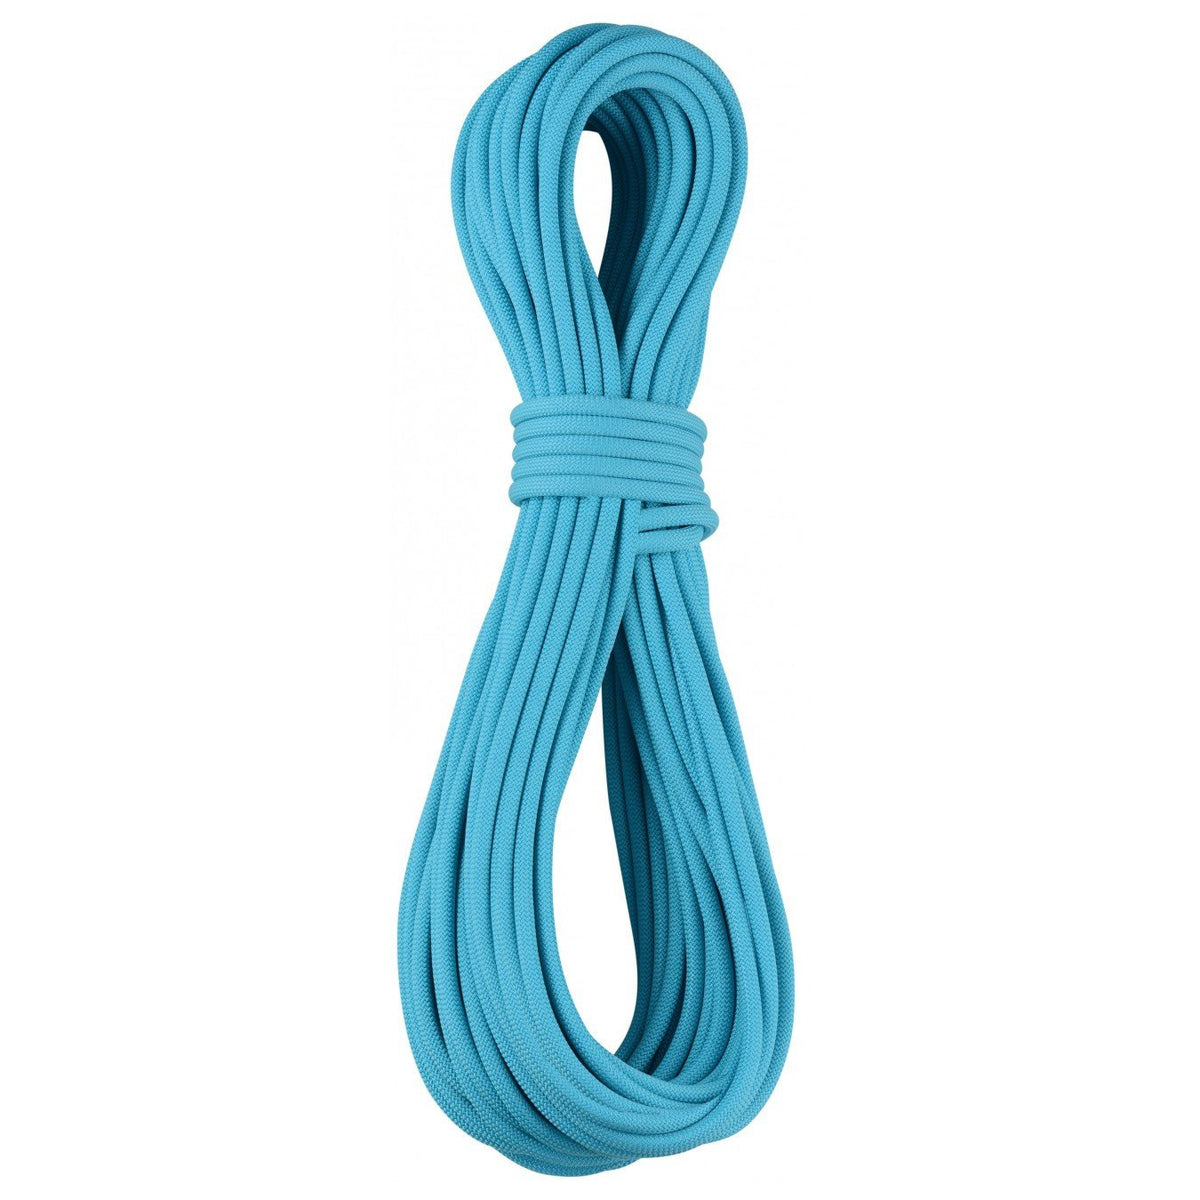 Edelrid Apus Pro Dry 7.9mm x 60m climbing rope, in icemint colour